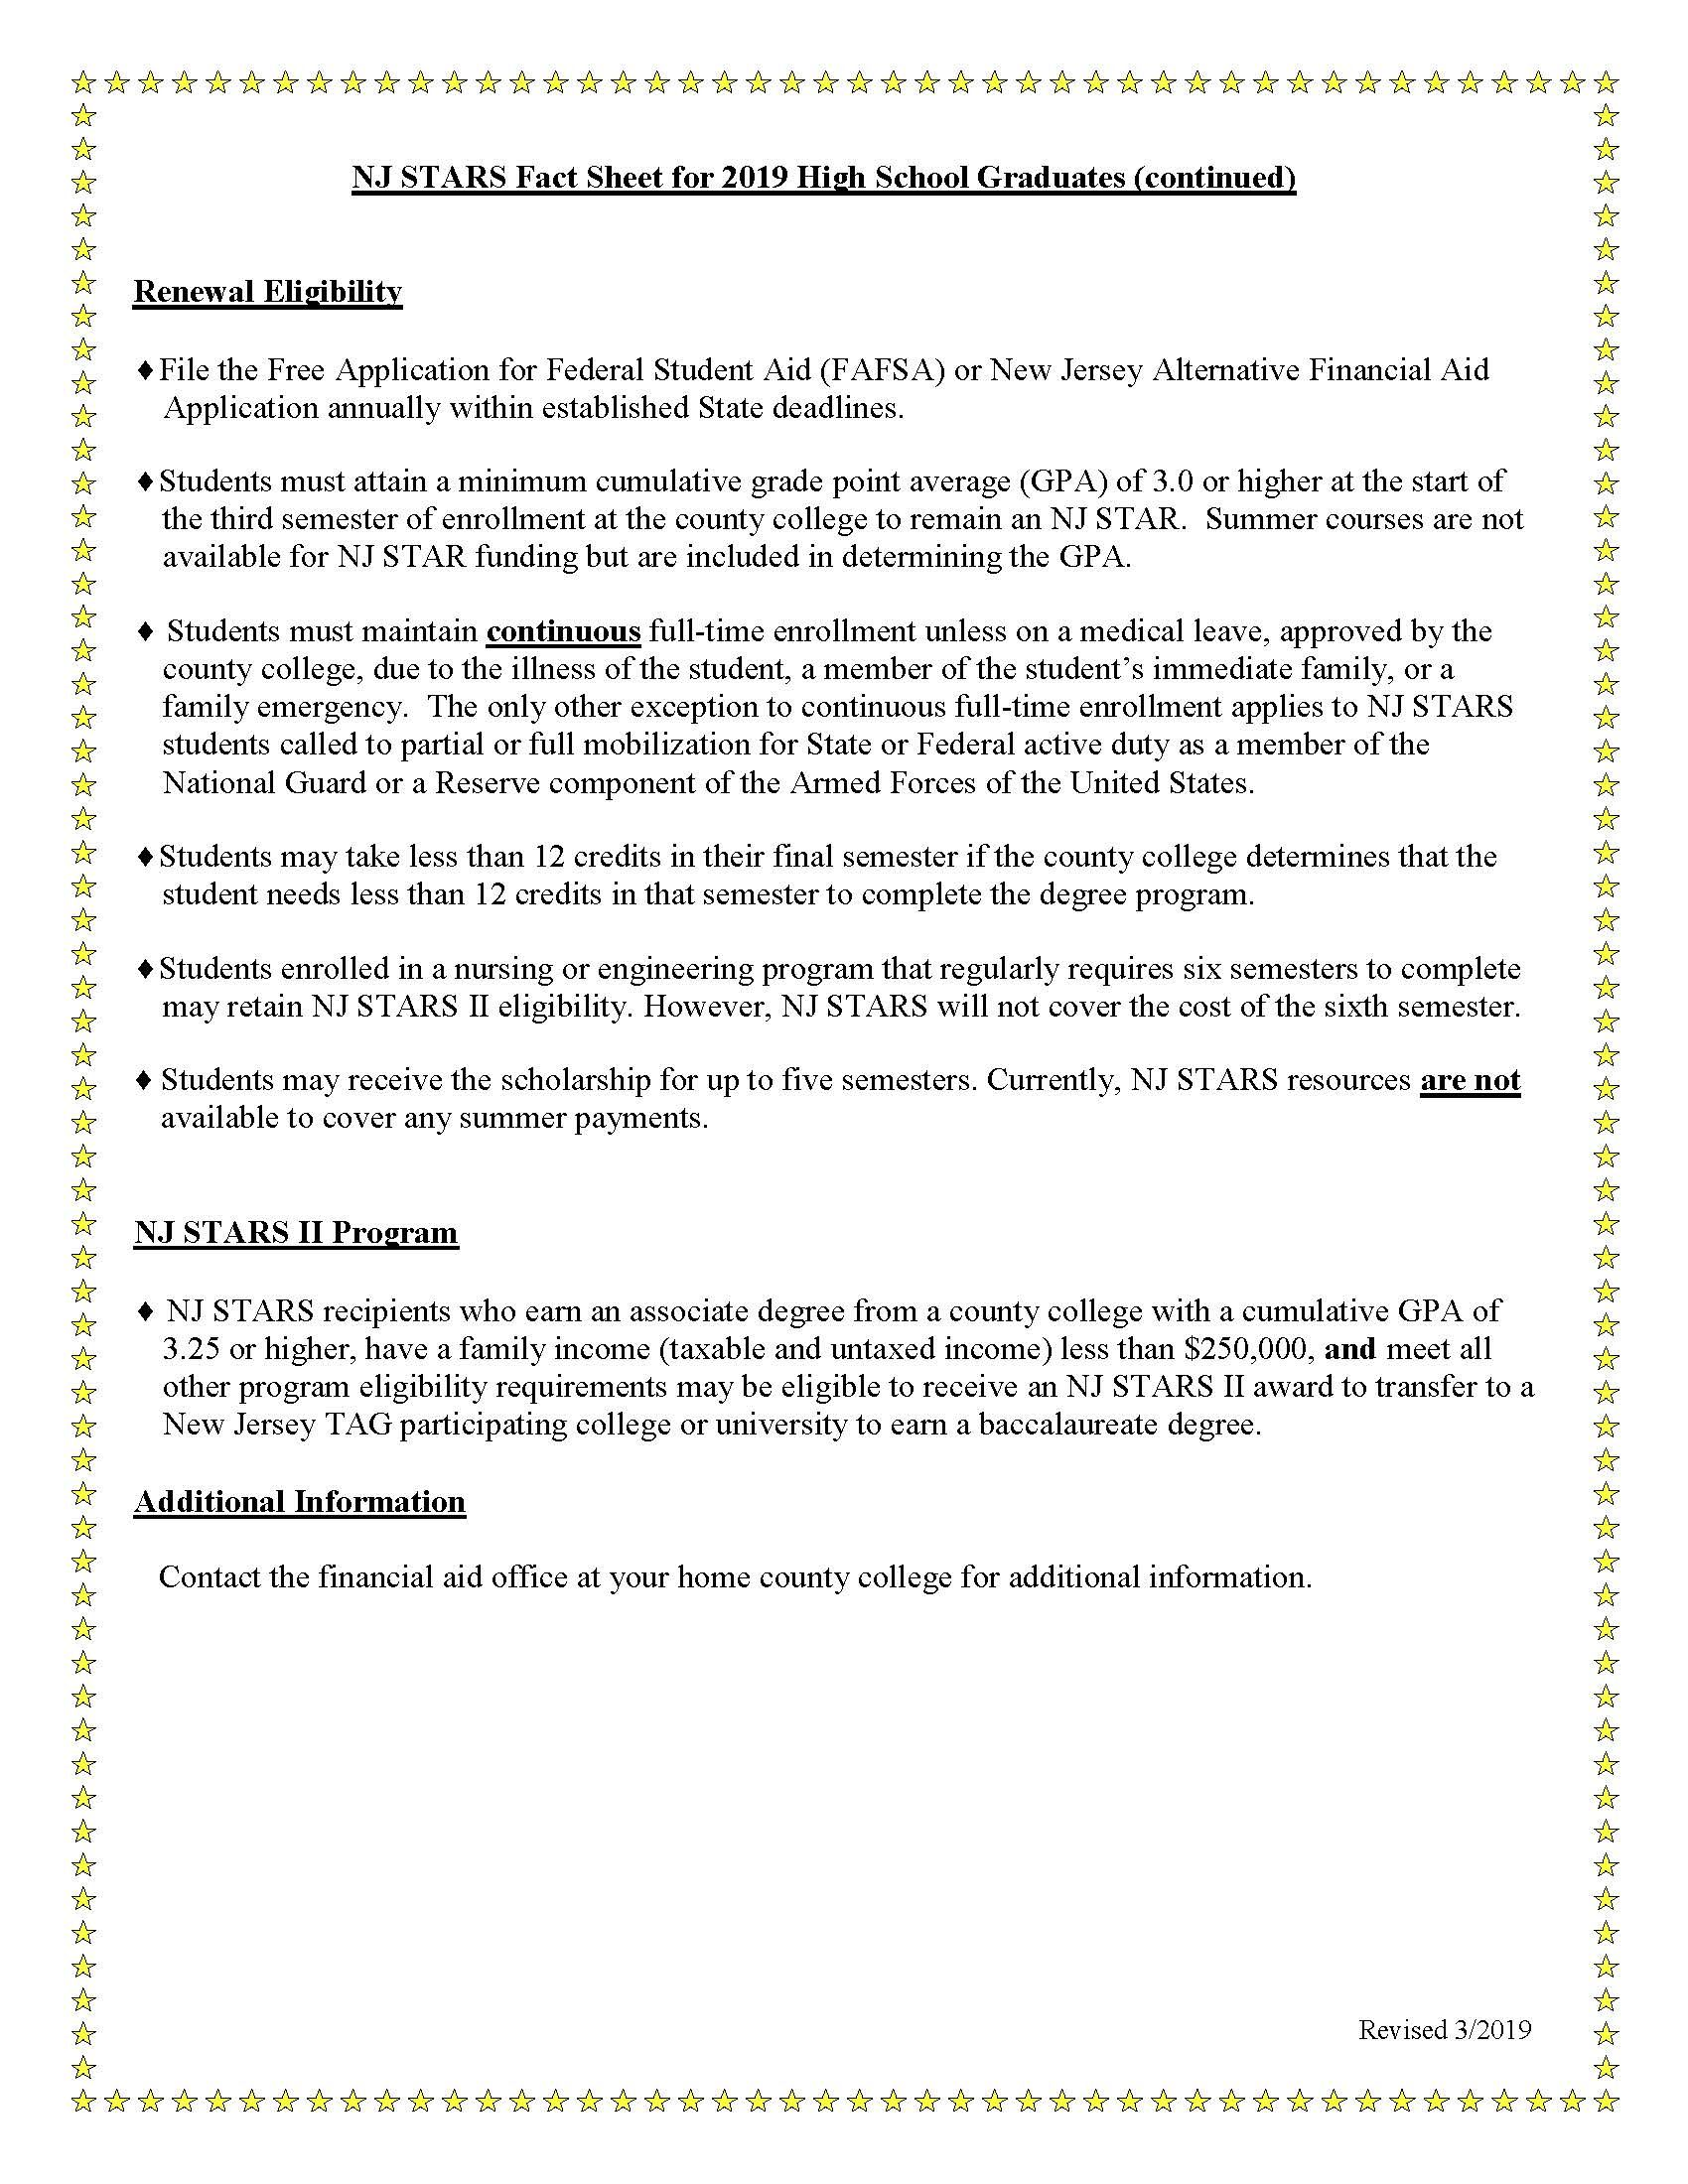 Eligibility and maintenance requirements for the nj stars